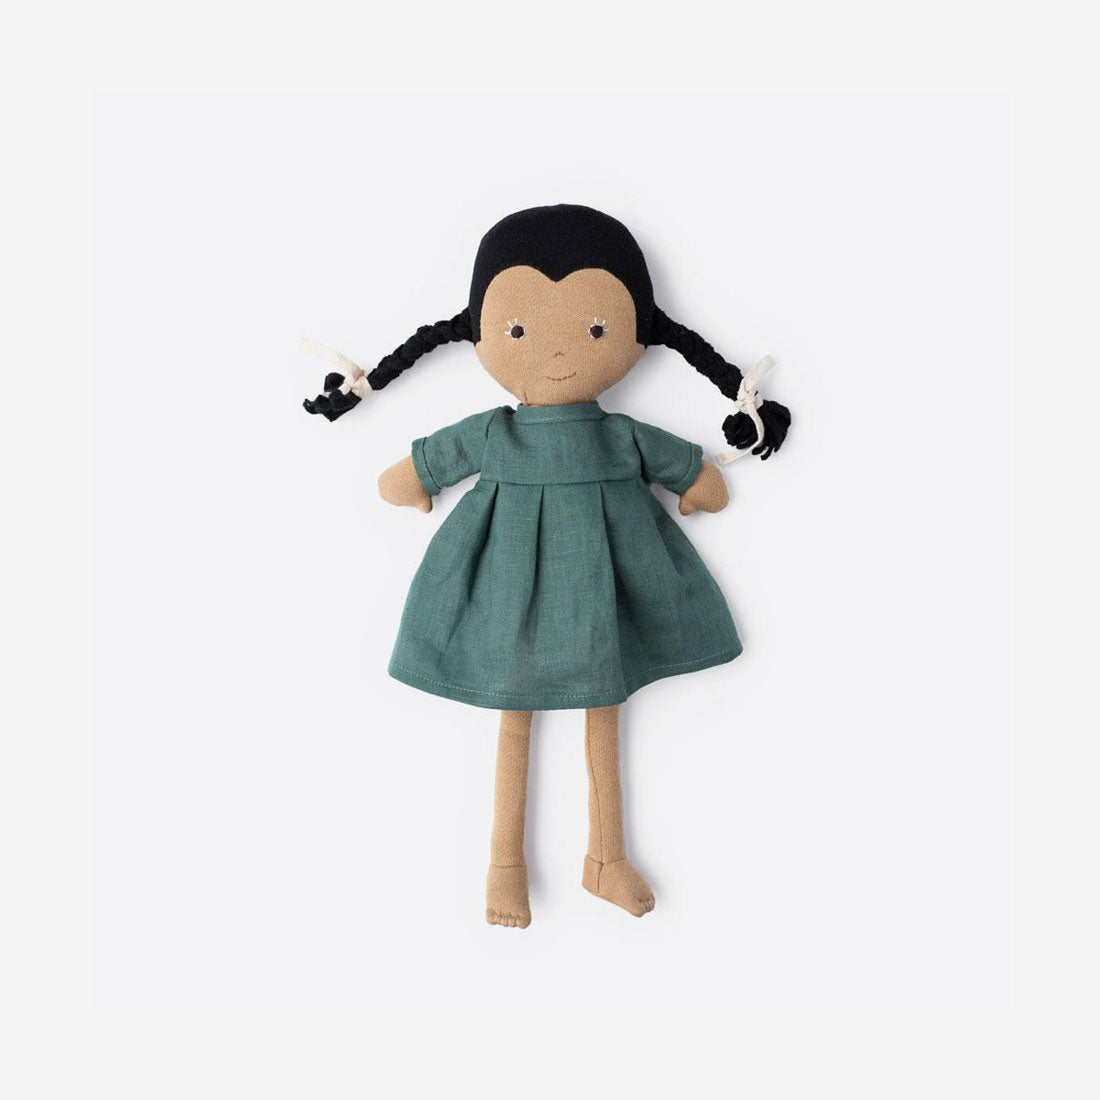 Celia Dolly in River Green Linen Dress